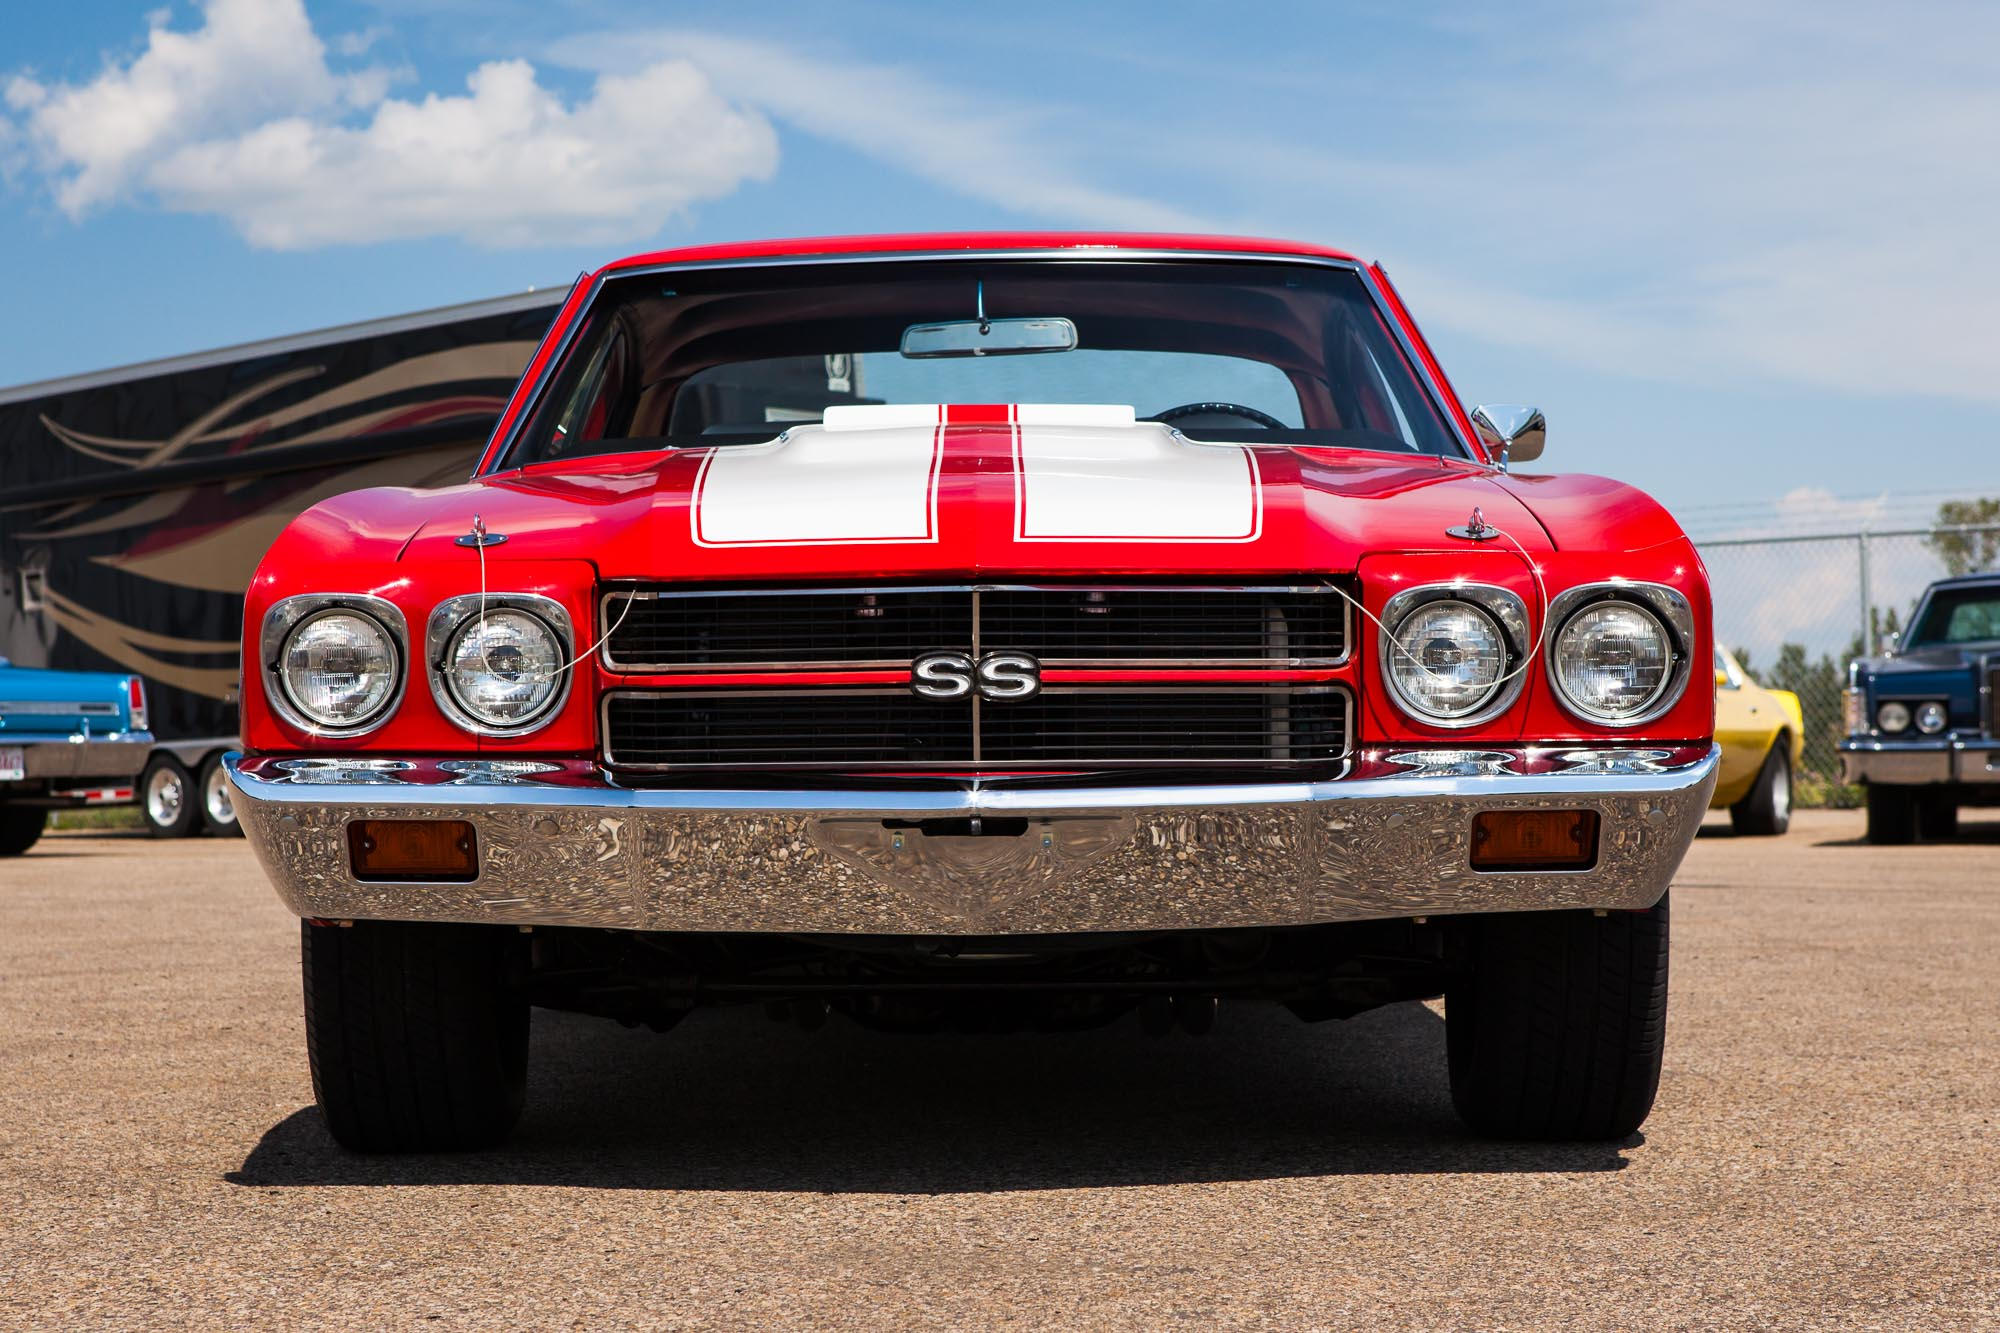 1970 Chevelle Ss Project Car For Sale >> 1970 Chevelle SS - The Iron Garage